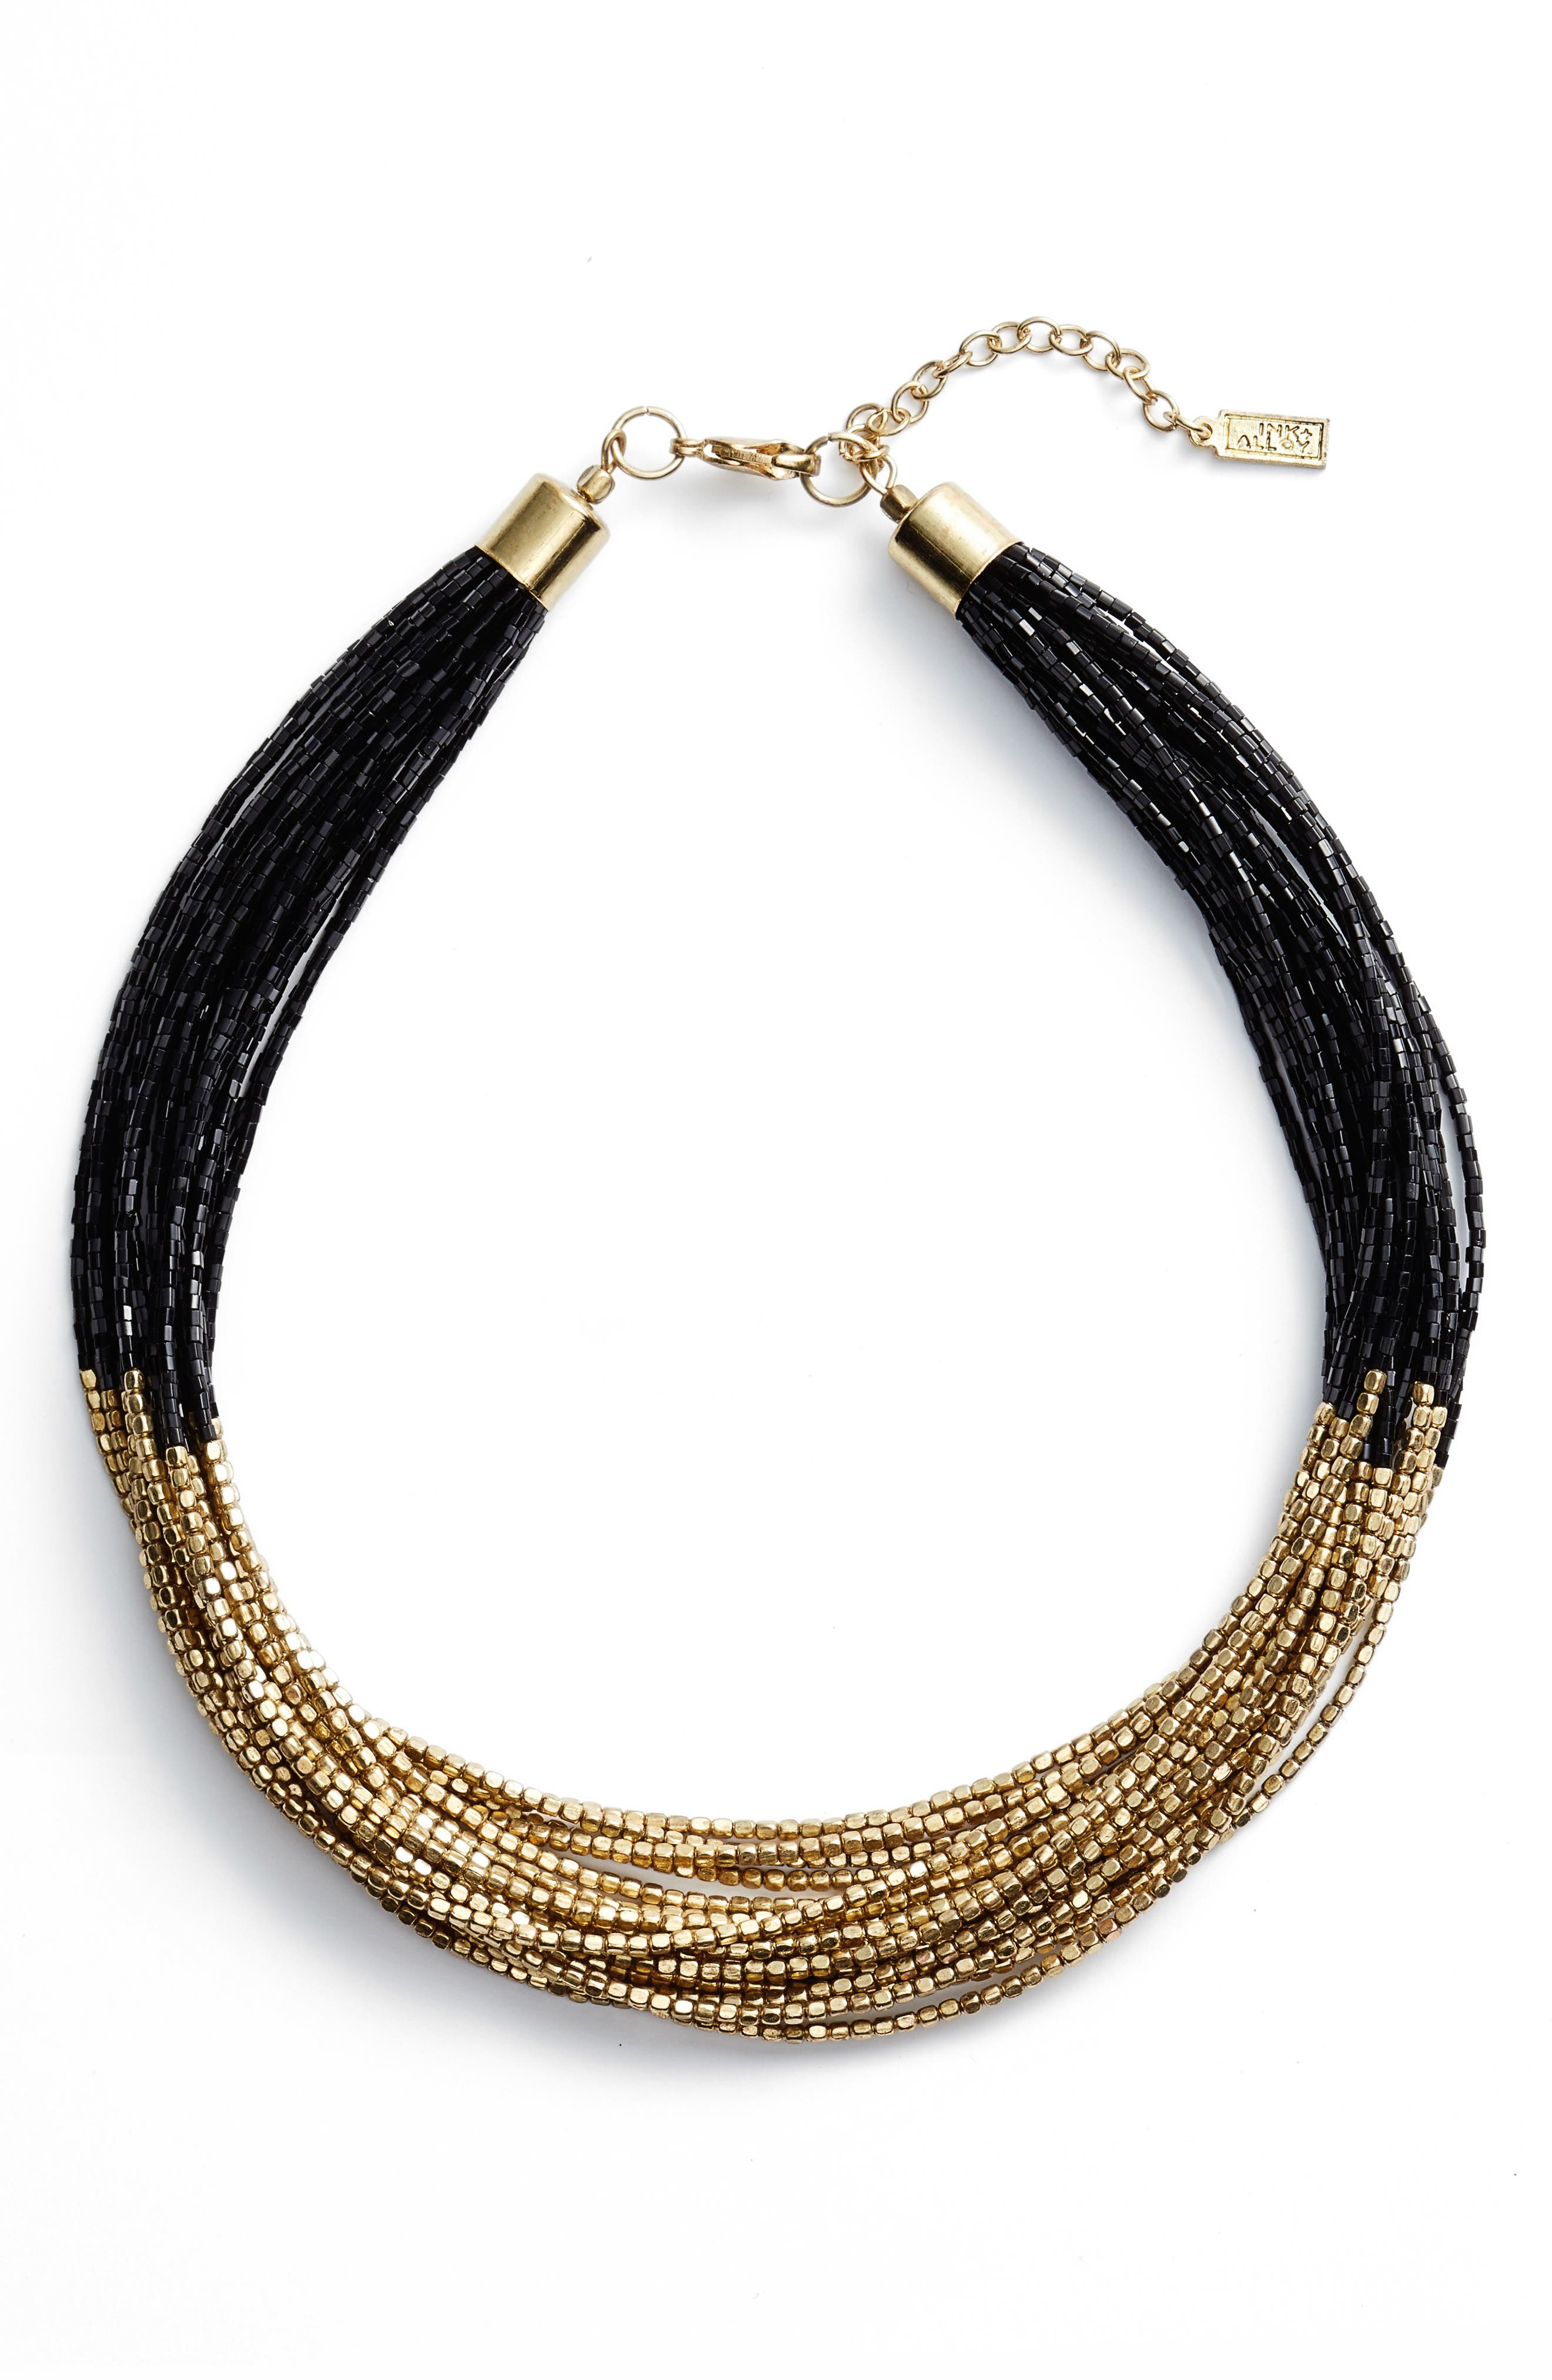 Main Image - INK + ALLOY Priya Multistrand Collar Necklace